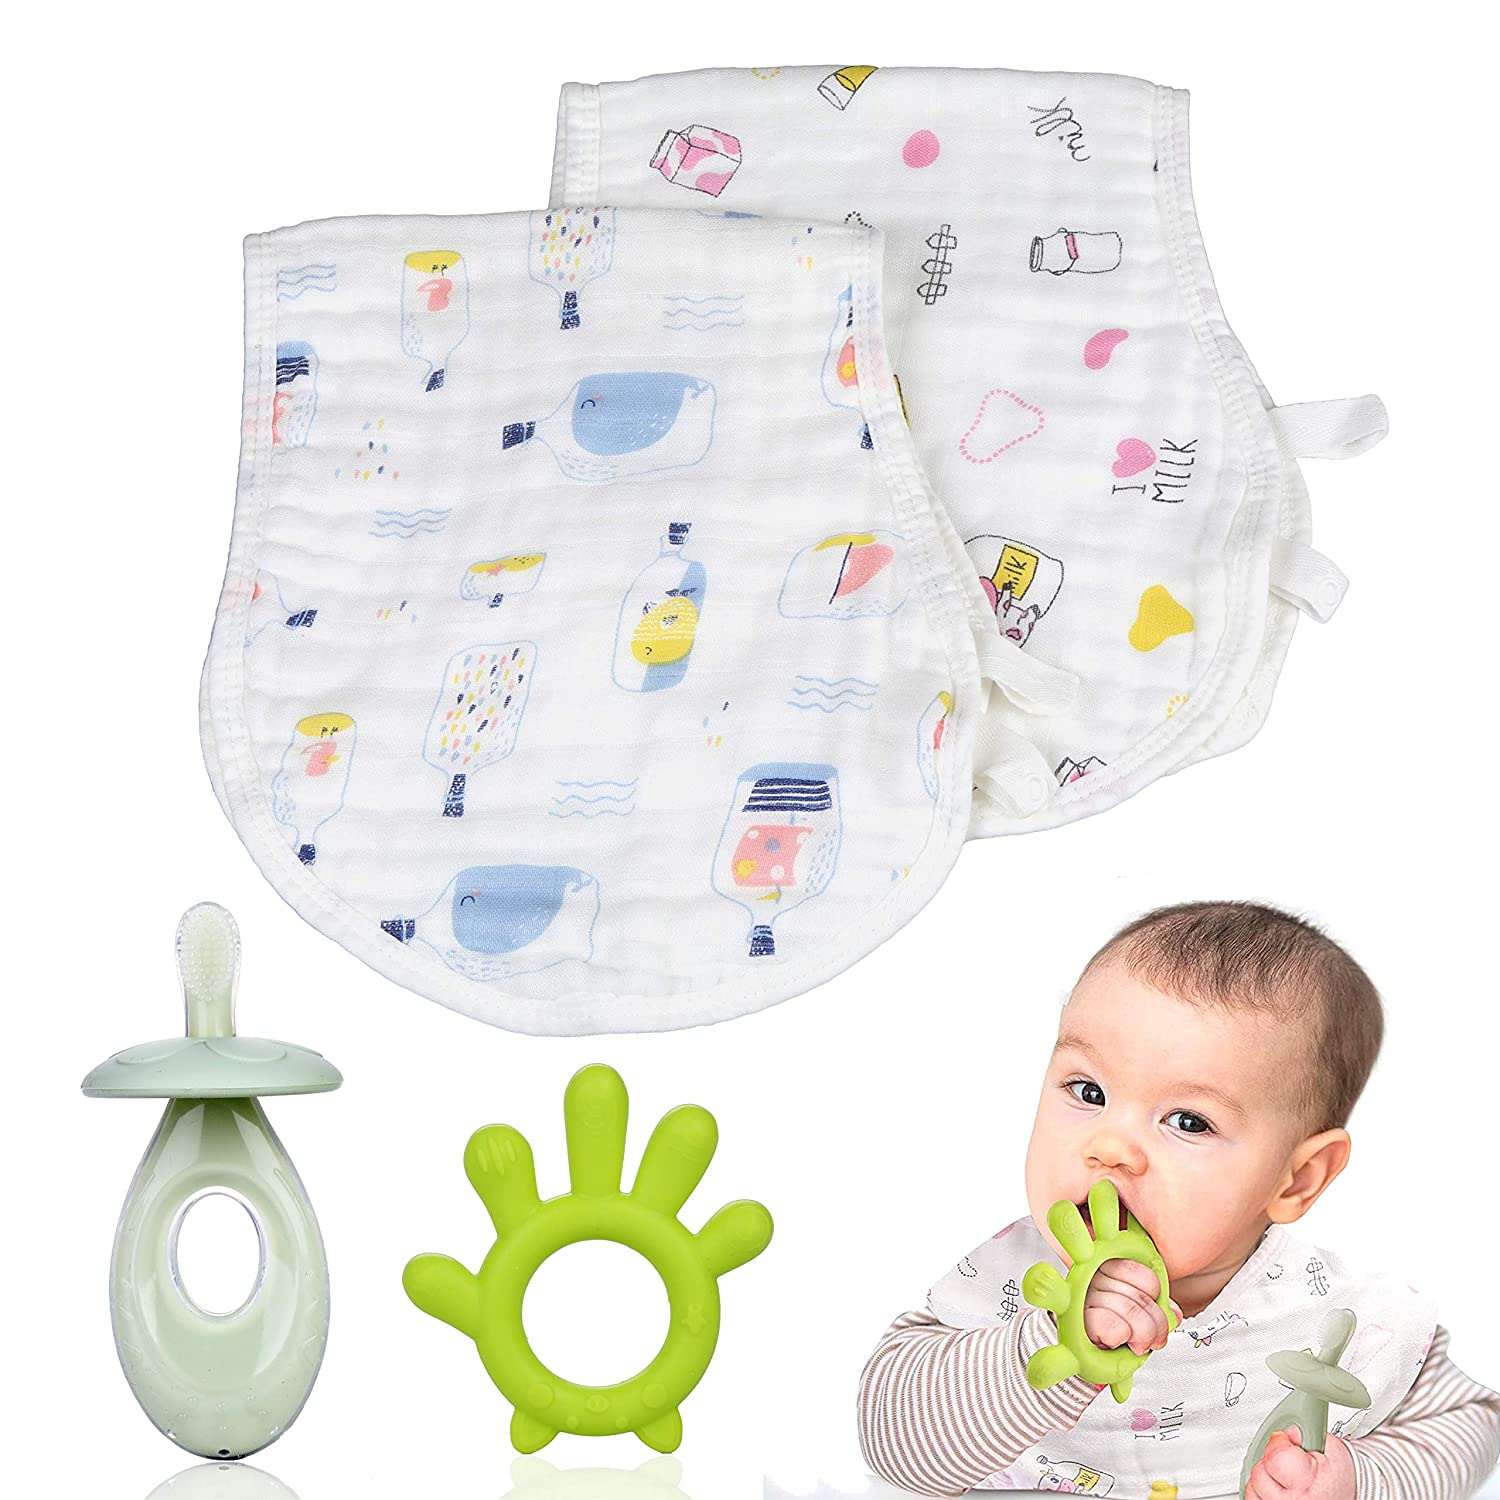 Newborn Toy Baby Teething Toy, Suitable for 0-6 Months Old Baby, Super Soft Silicone Baby Teething Toy, Soft Silicone Dental Tape bristles.